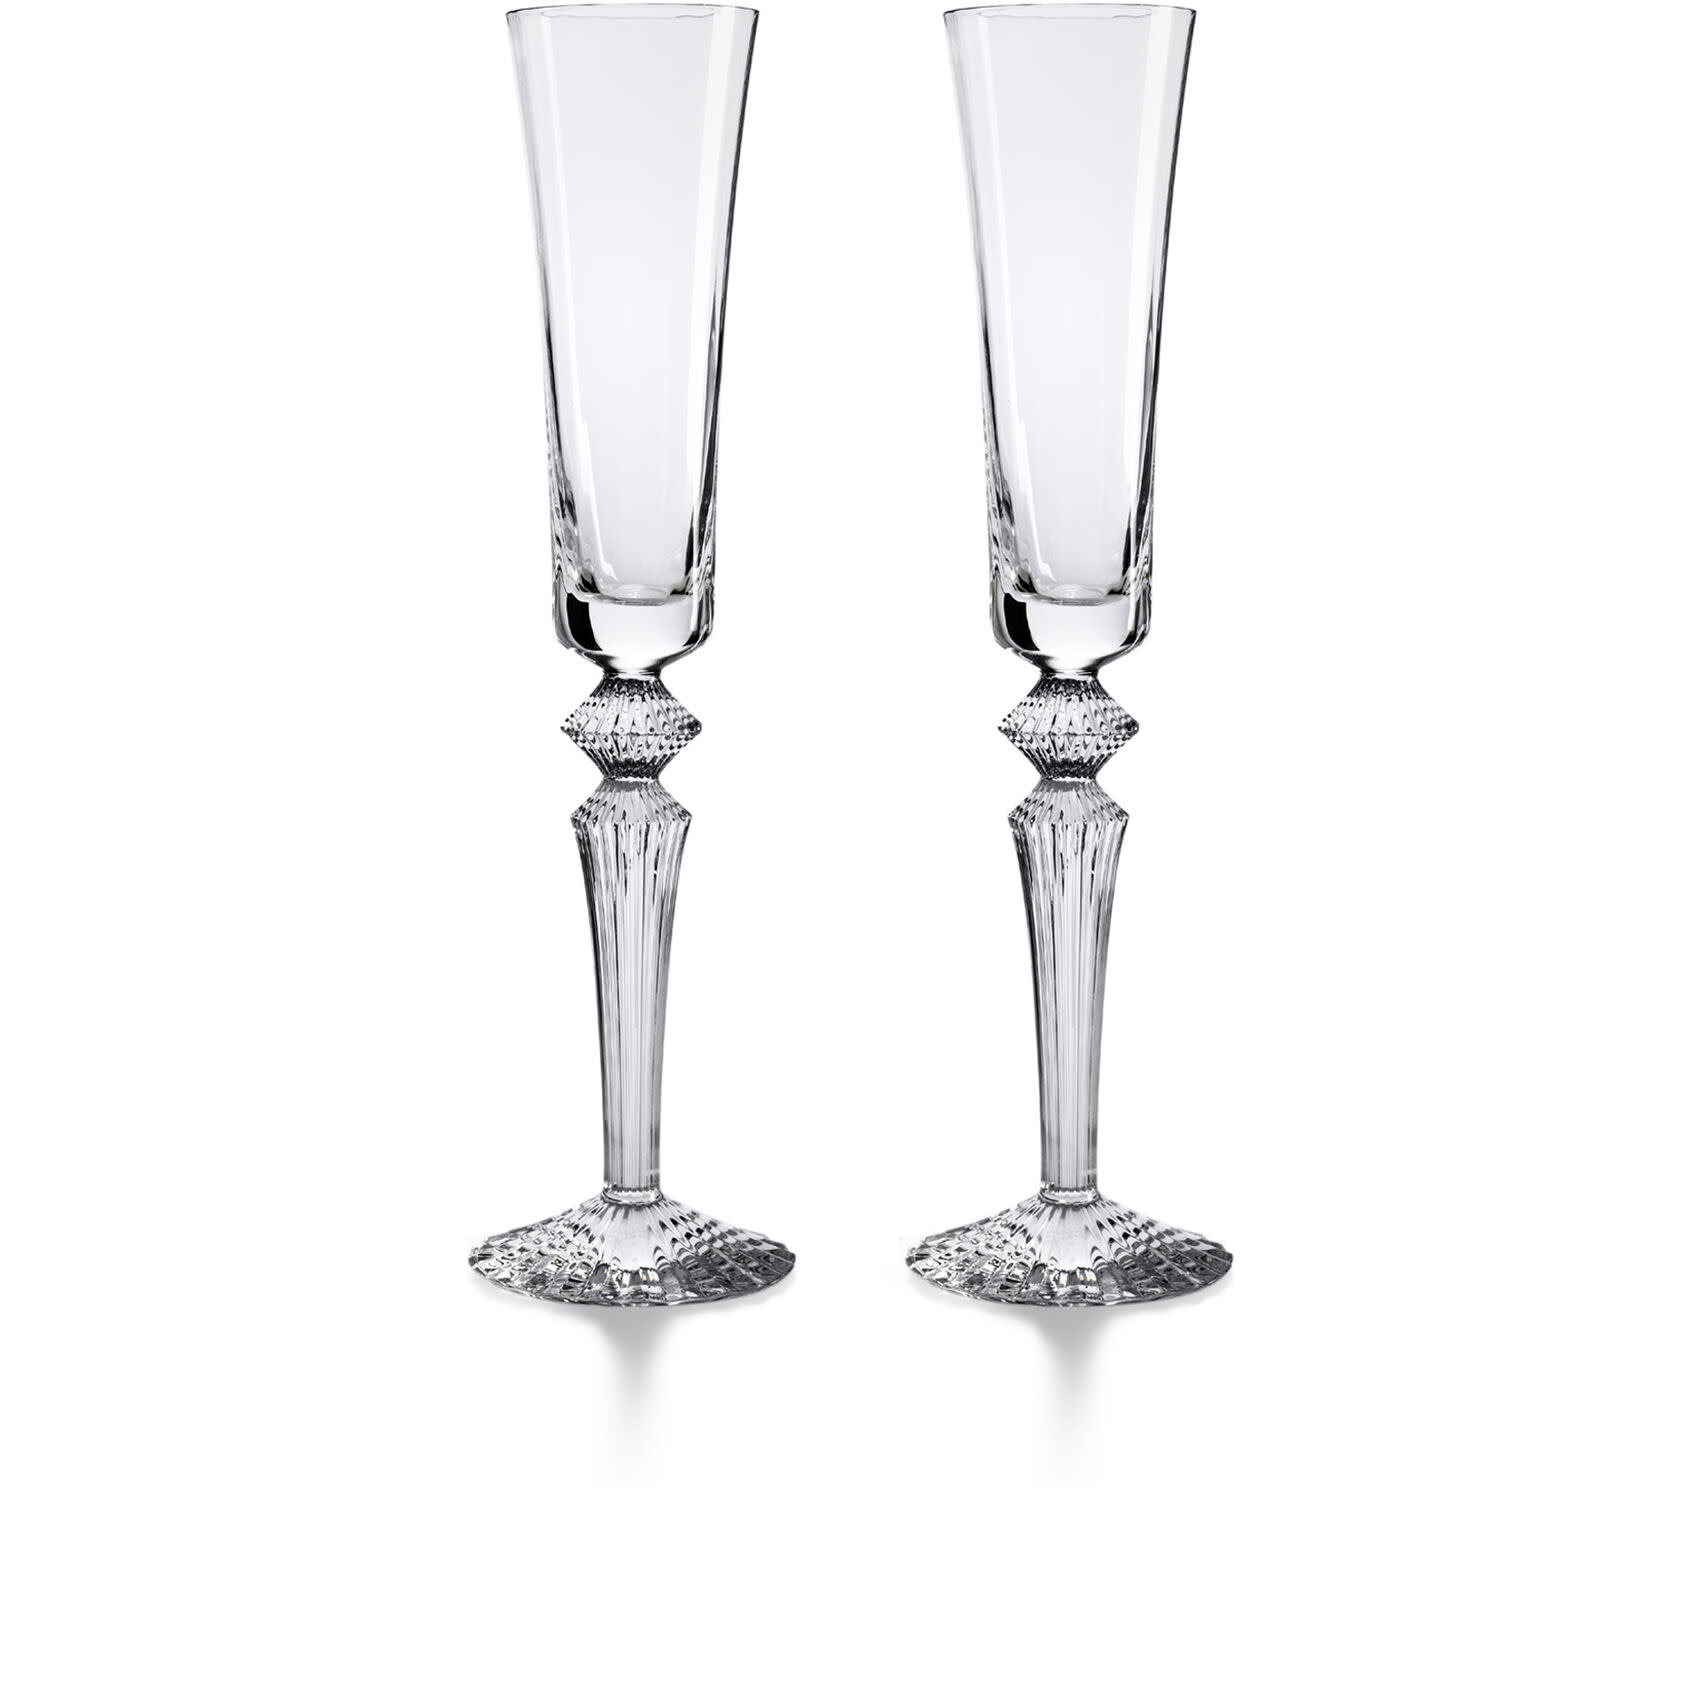 Baccarat Mille Nuits Flutissimo Clear S/2